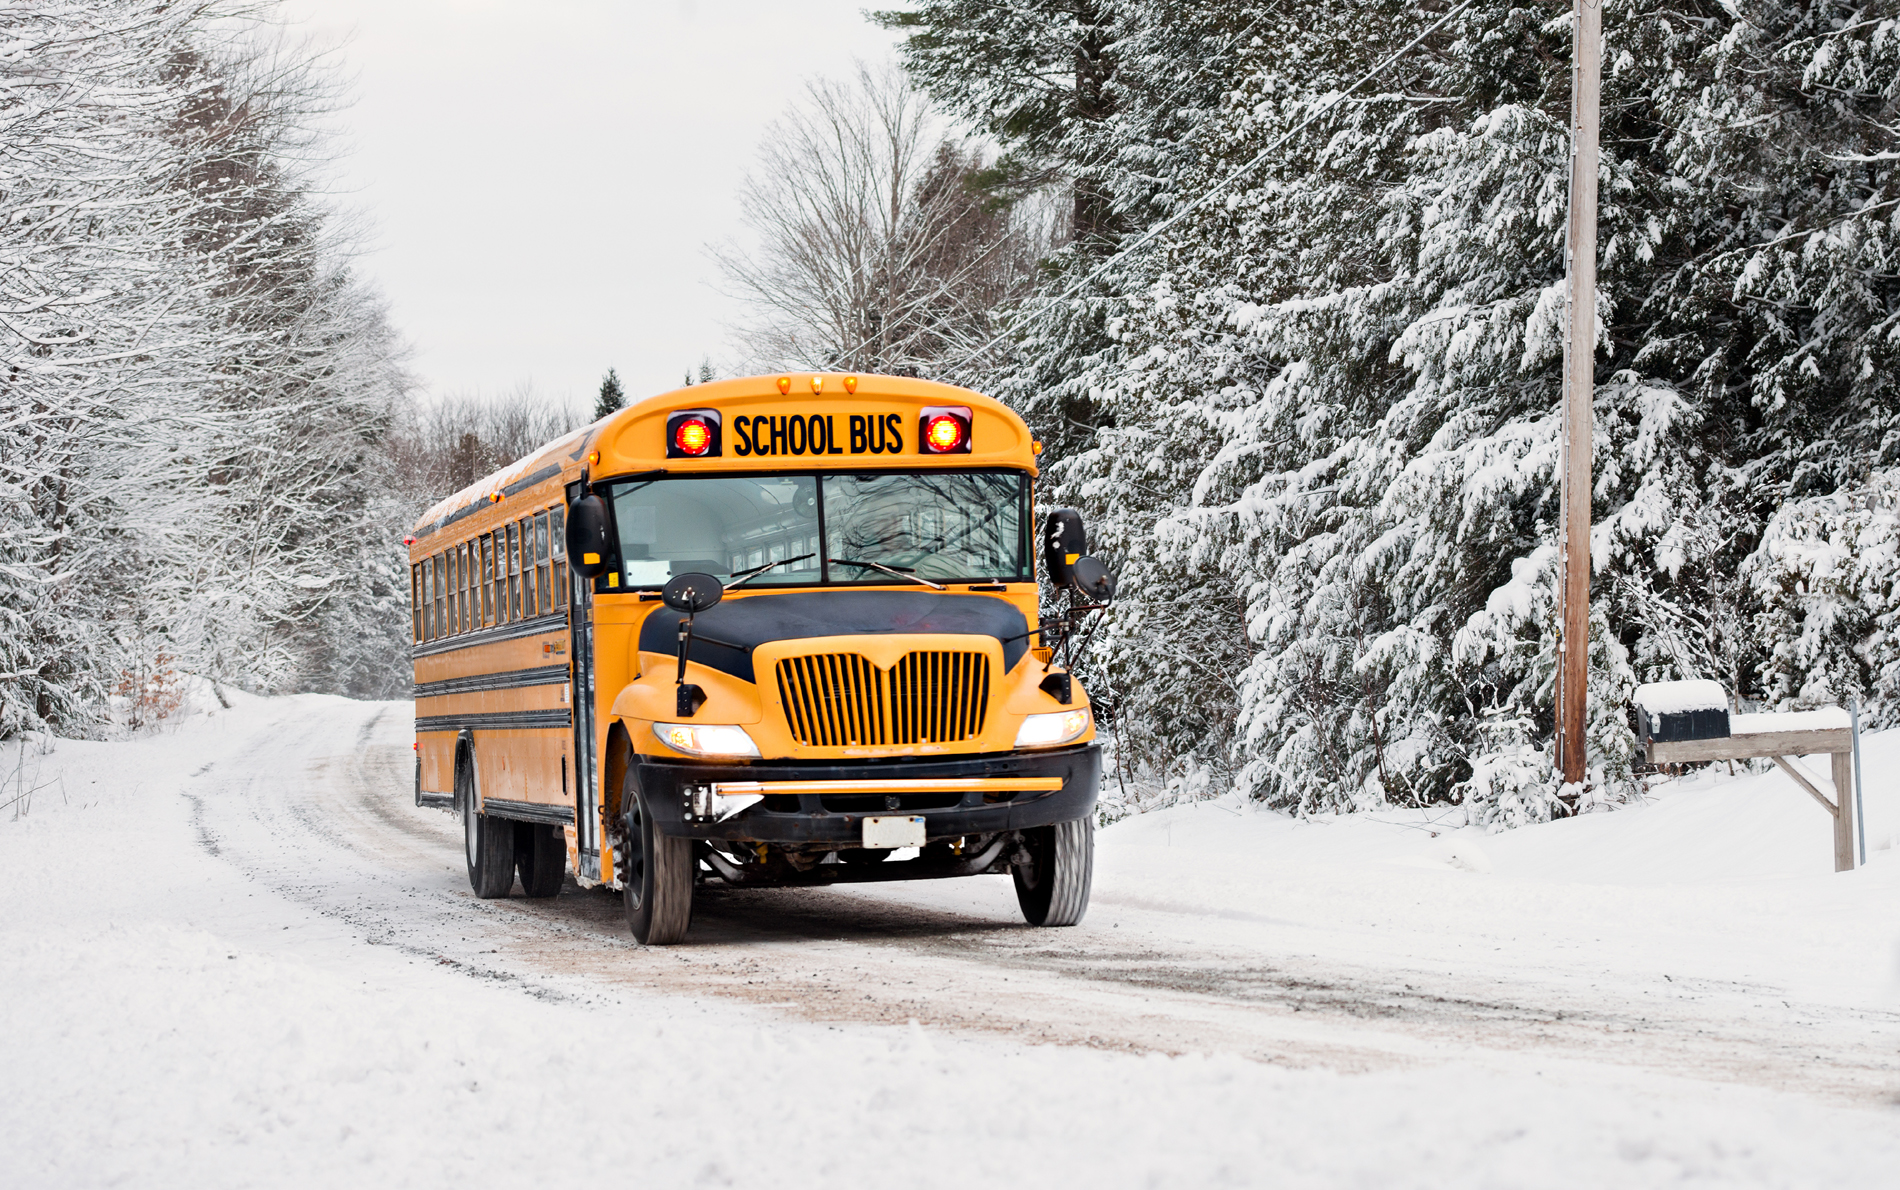 Winter driving on the road the school bus 52720